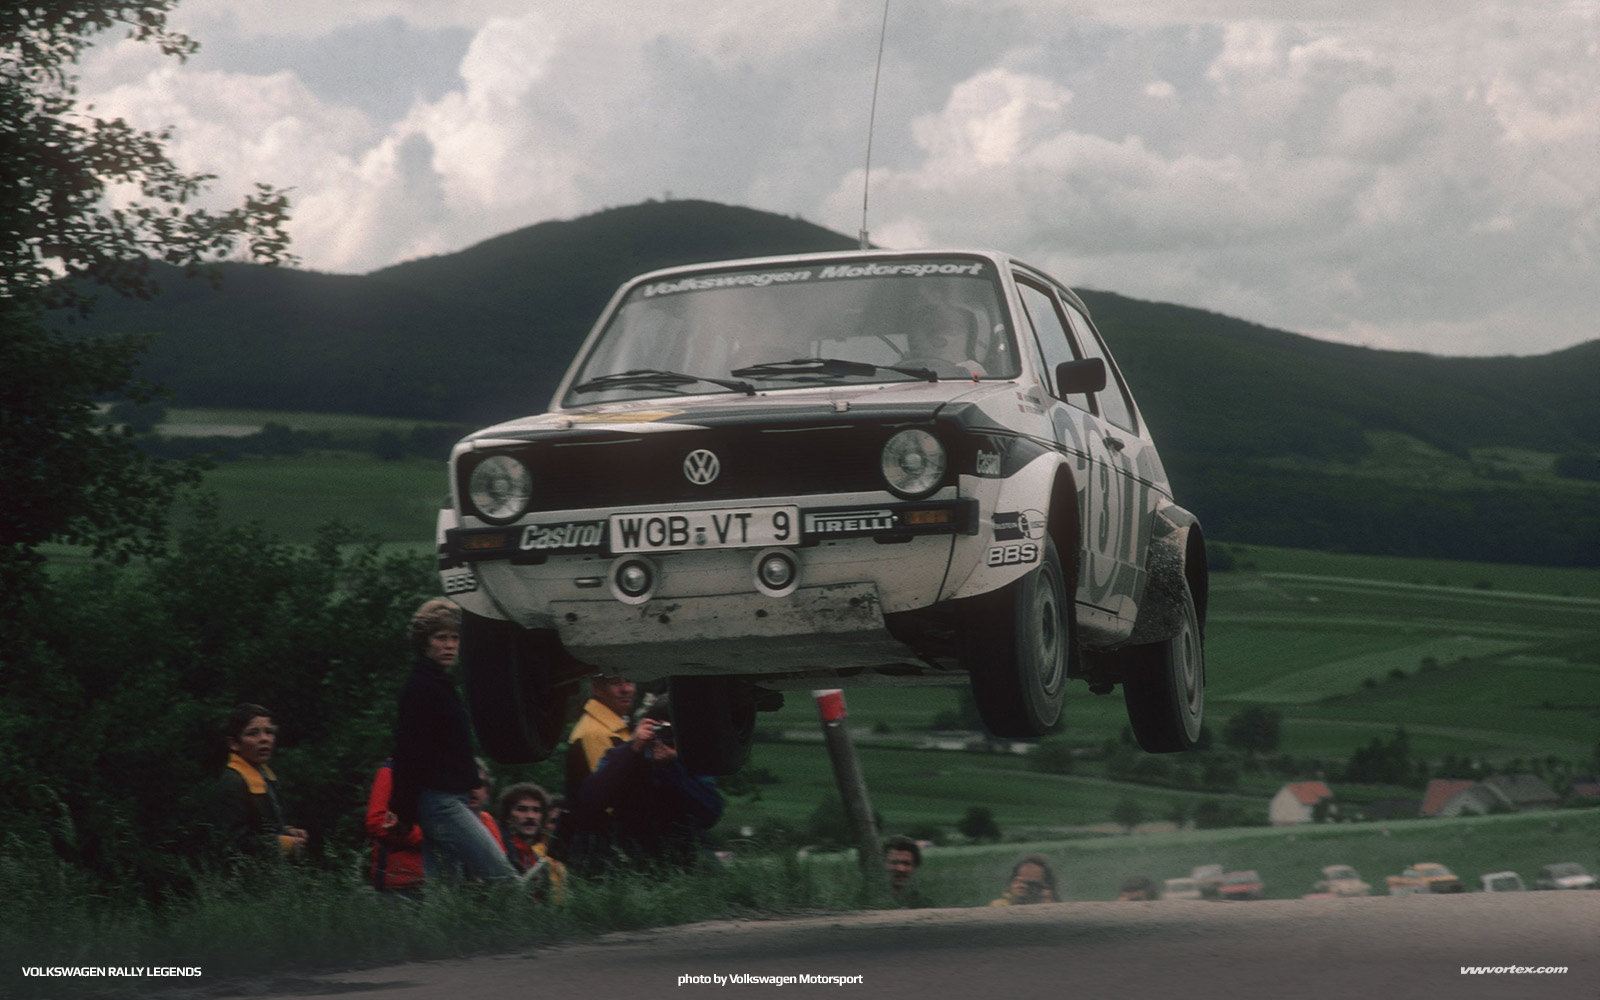 volkswagen-rally-legends-405